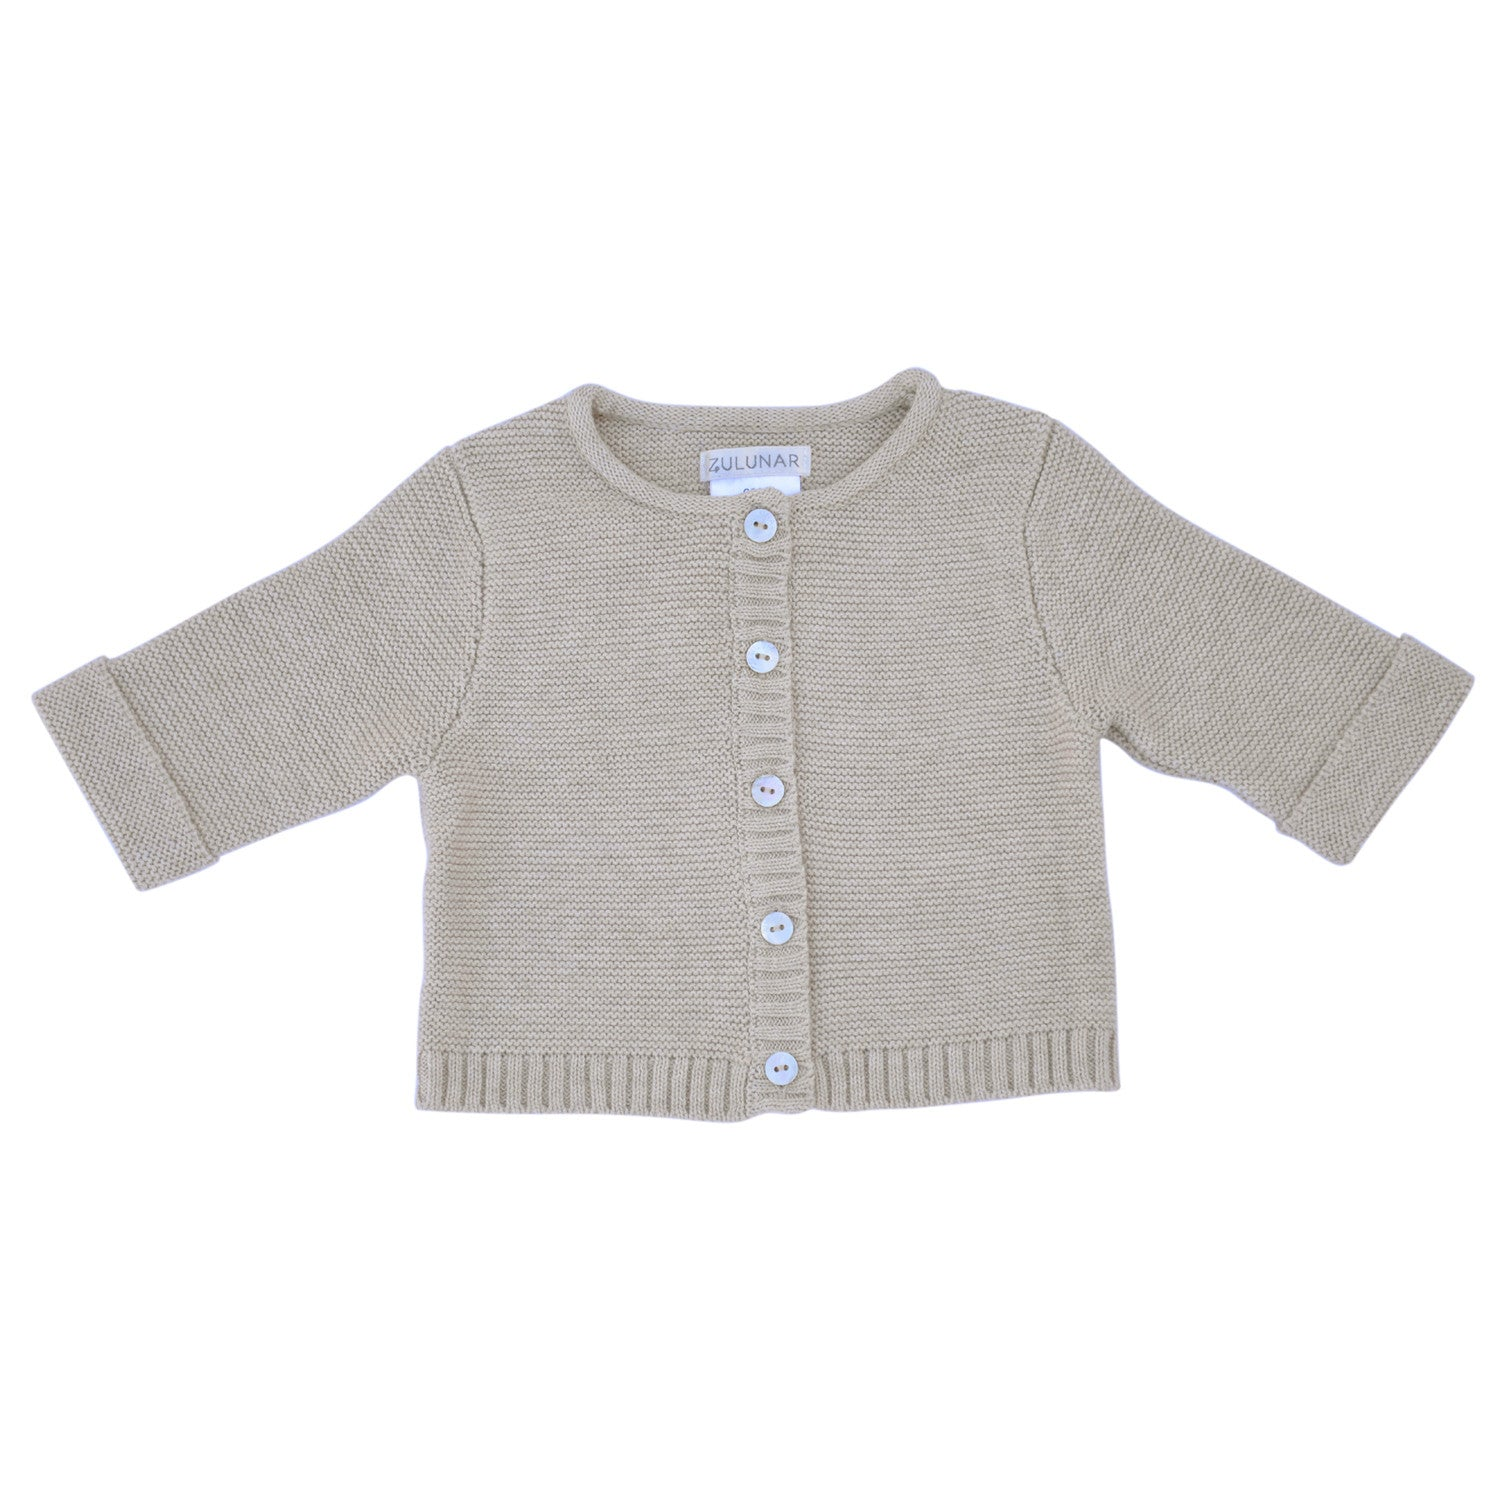 97e20576ab2c7 Wave knit luxury cotton baby cardigan in oatmeal colour – Zulunar